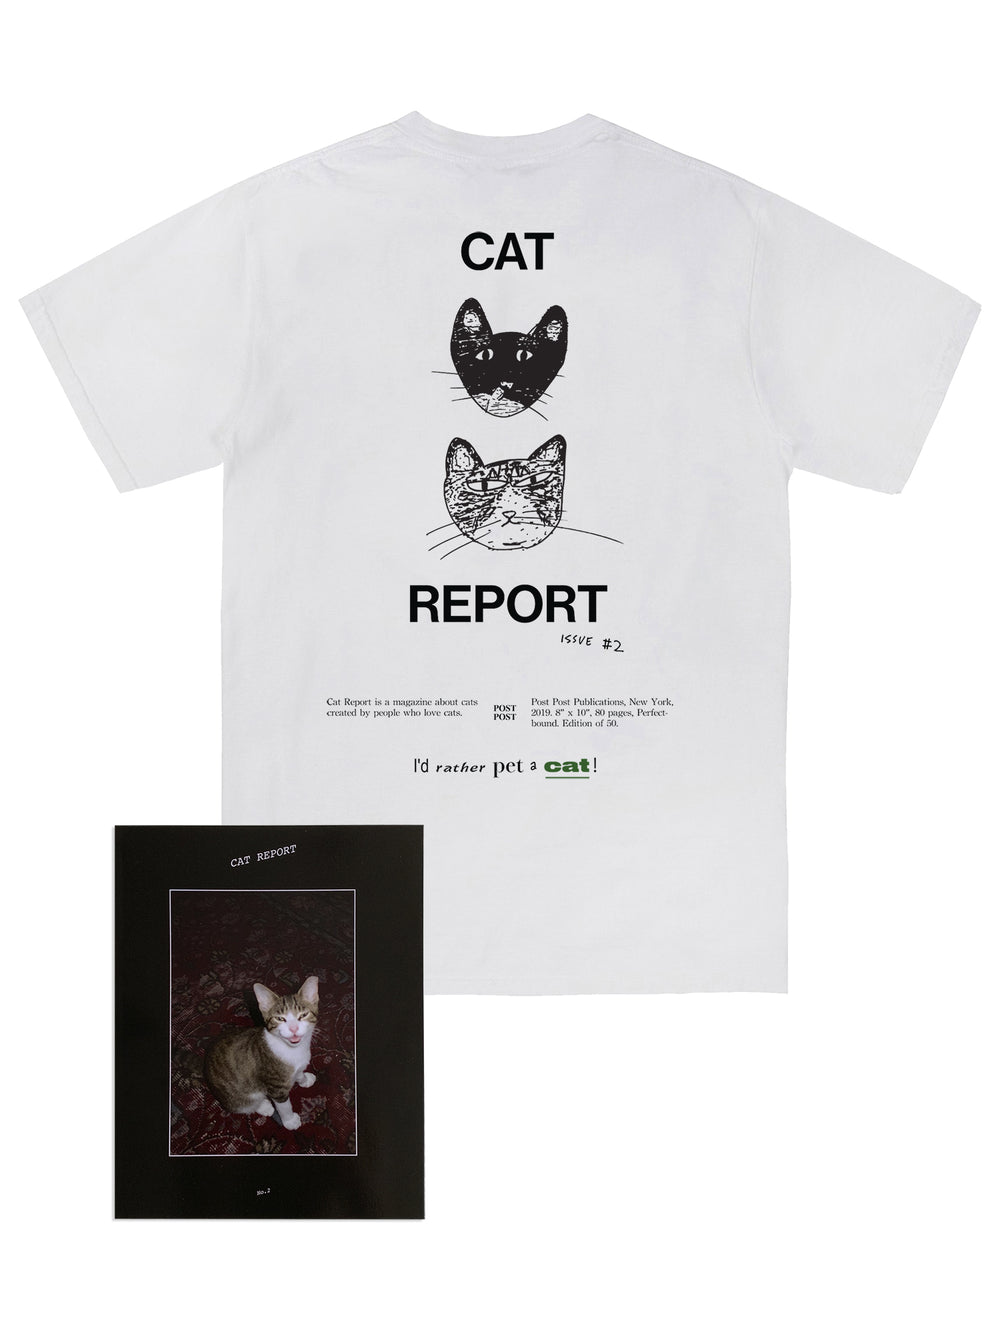 Cat Report No. 2 Tee + Magazine